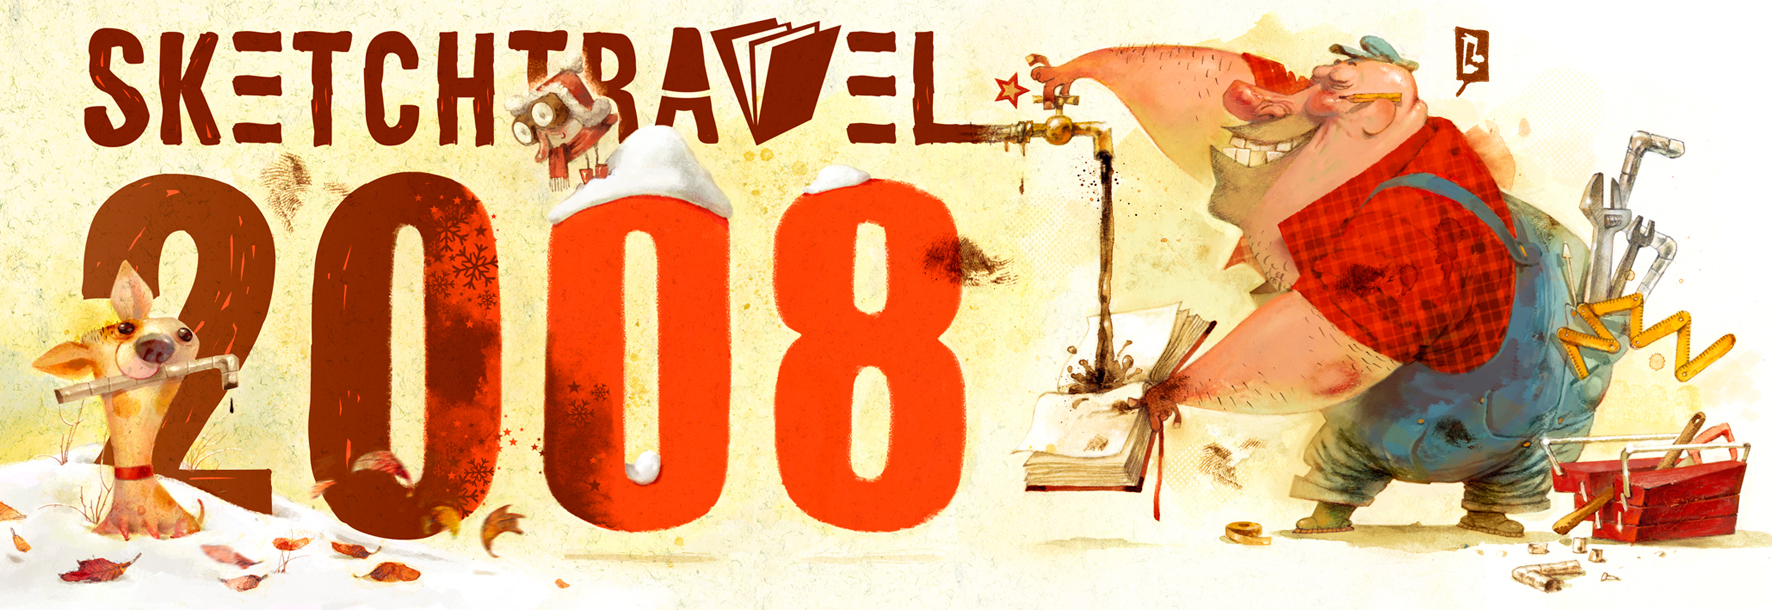 Sketchtravel project's 2008 New Year card